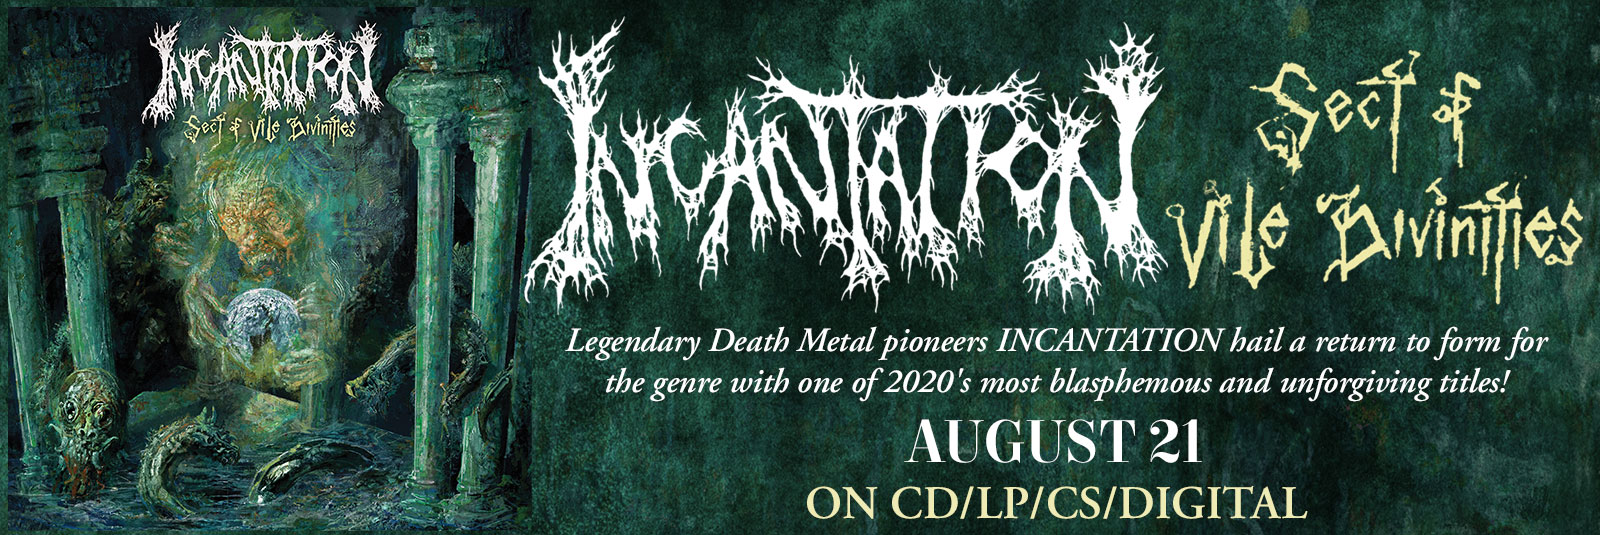 incantation-sect-of-vile-divinities-death-metal-relapse